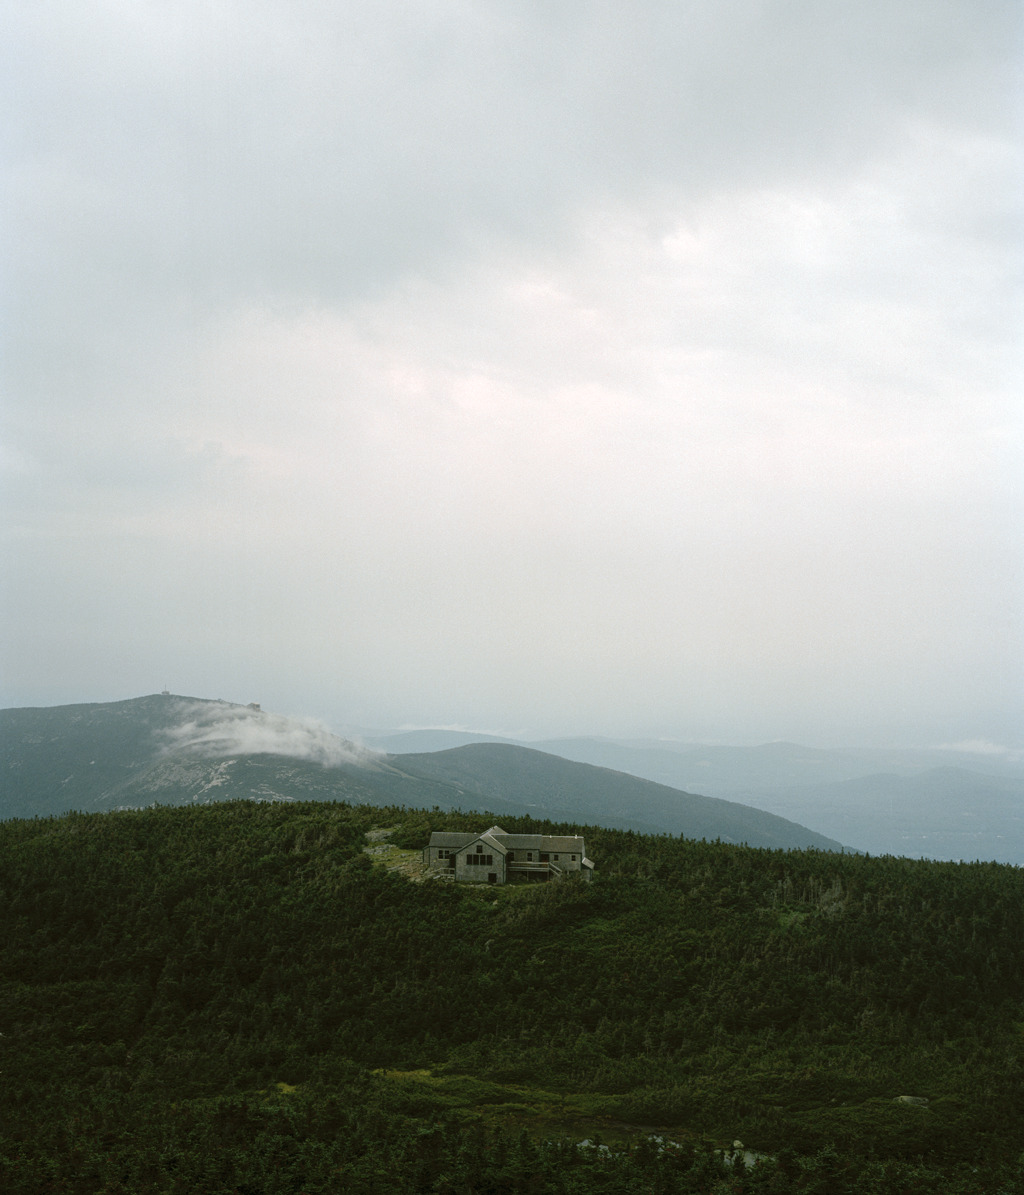 Appalachian Mountain Club'sGreenleaf Hut in theWhite Mountains of New Hampshire.<br /><br /><br /><br /> Photograph by Ryan Shorosky.